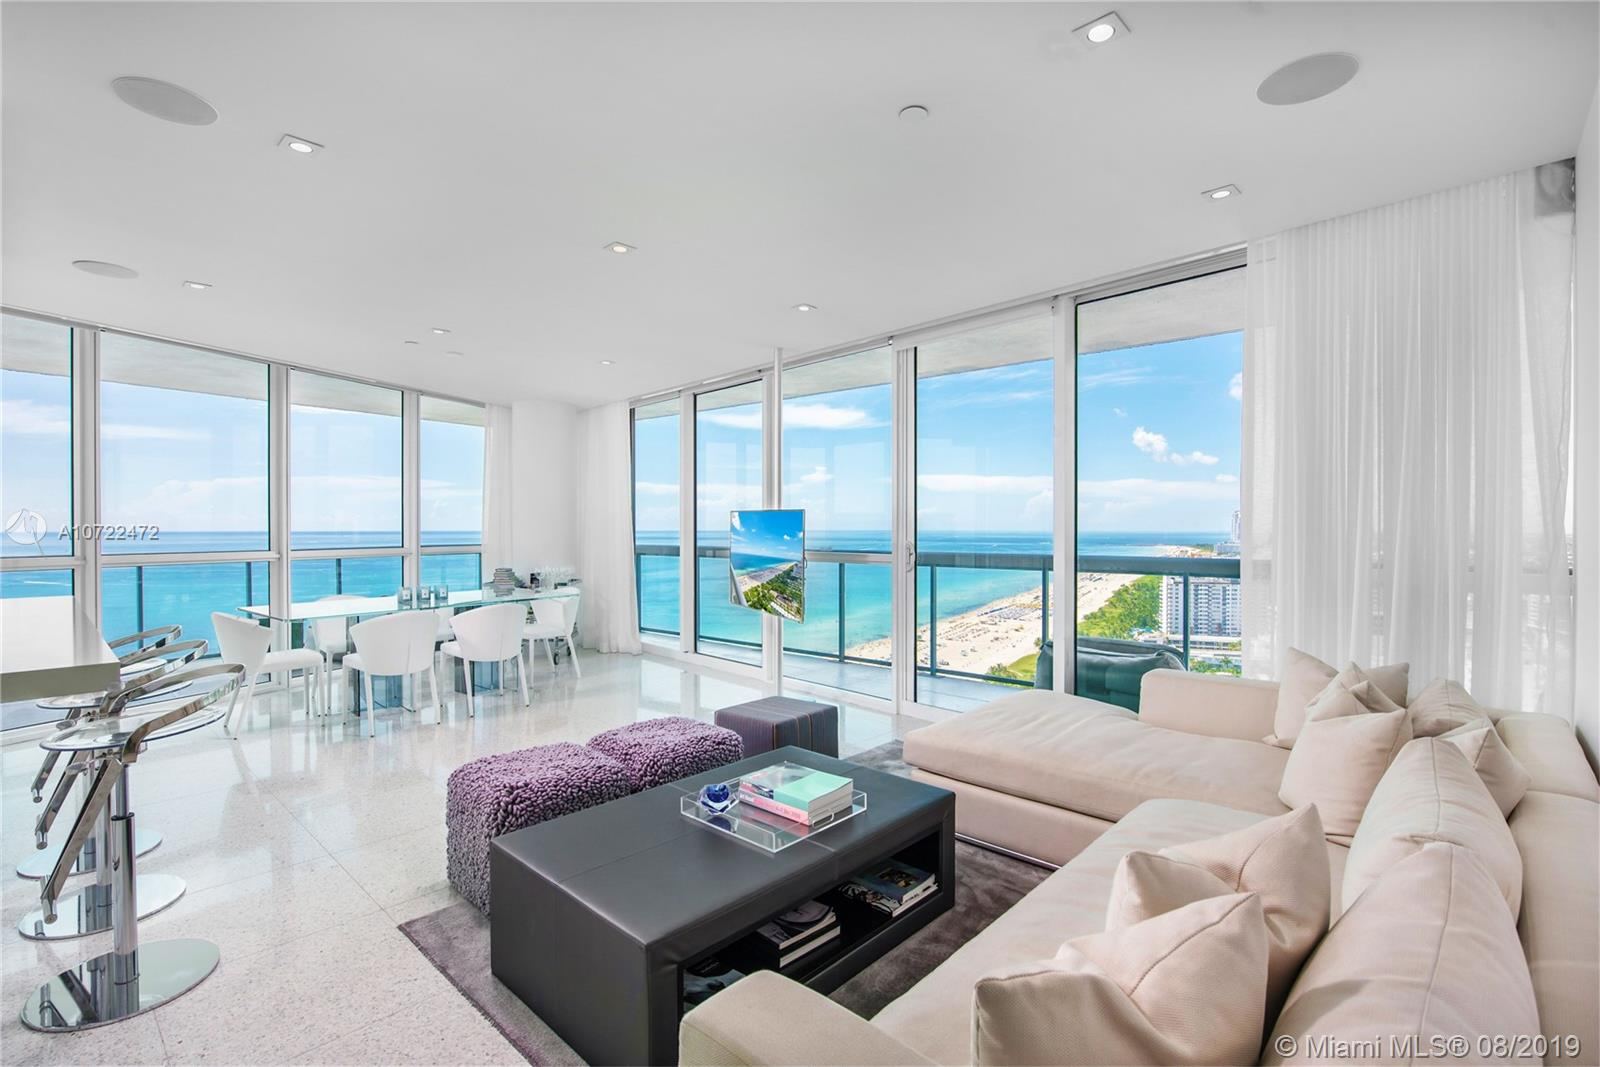 101 20th St # 3208, Miami Beach, Florida 33139, 2 Bedrooms Bedrooms, ,2 BathroomsBathrooms,Residential,For Sale,101 20th St # 3208,A10722472